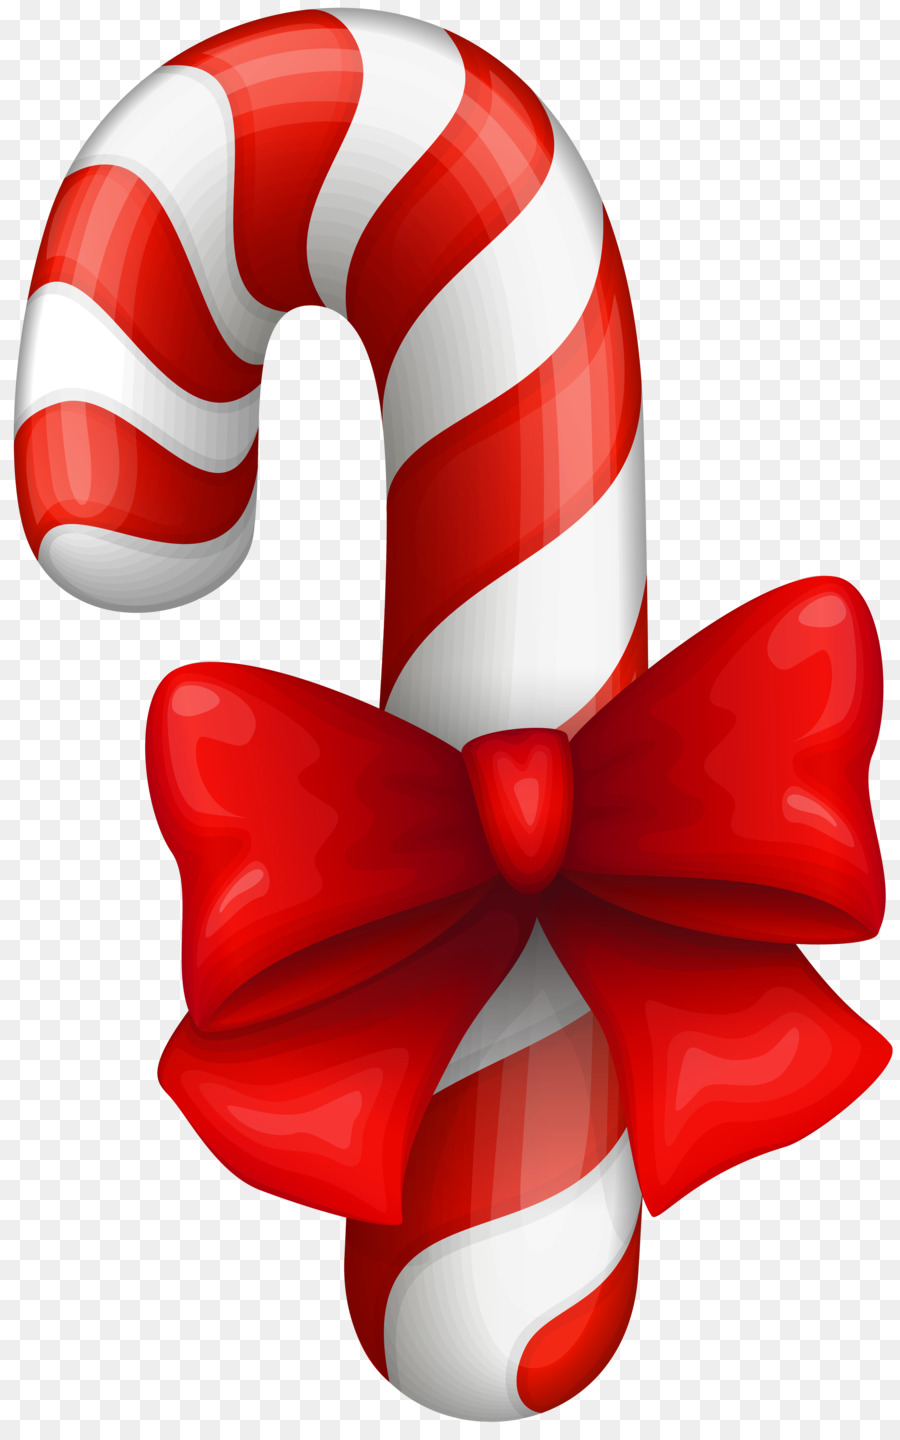 Candy Cane Desktop Wallpaper Clip Art